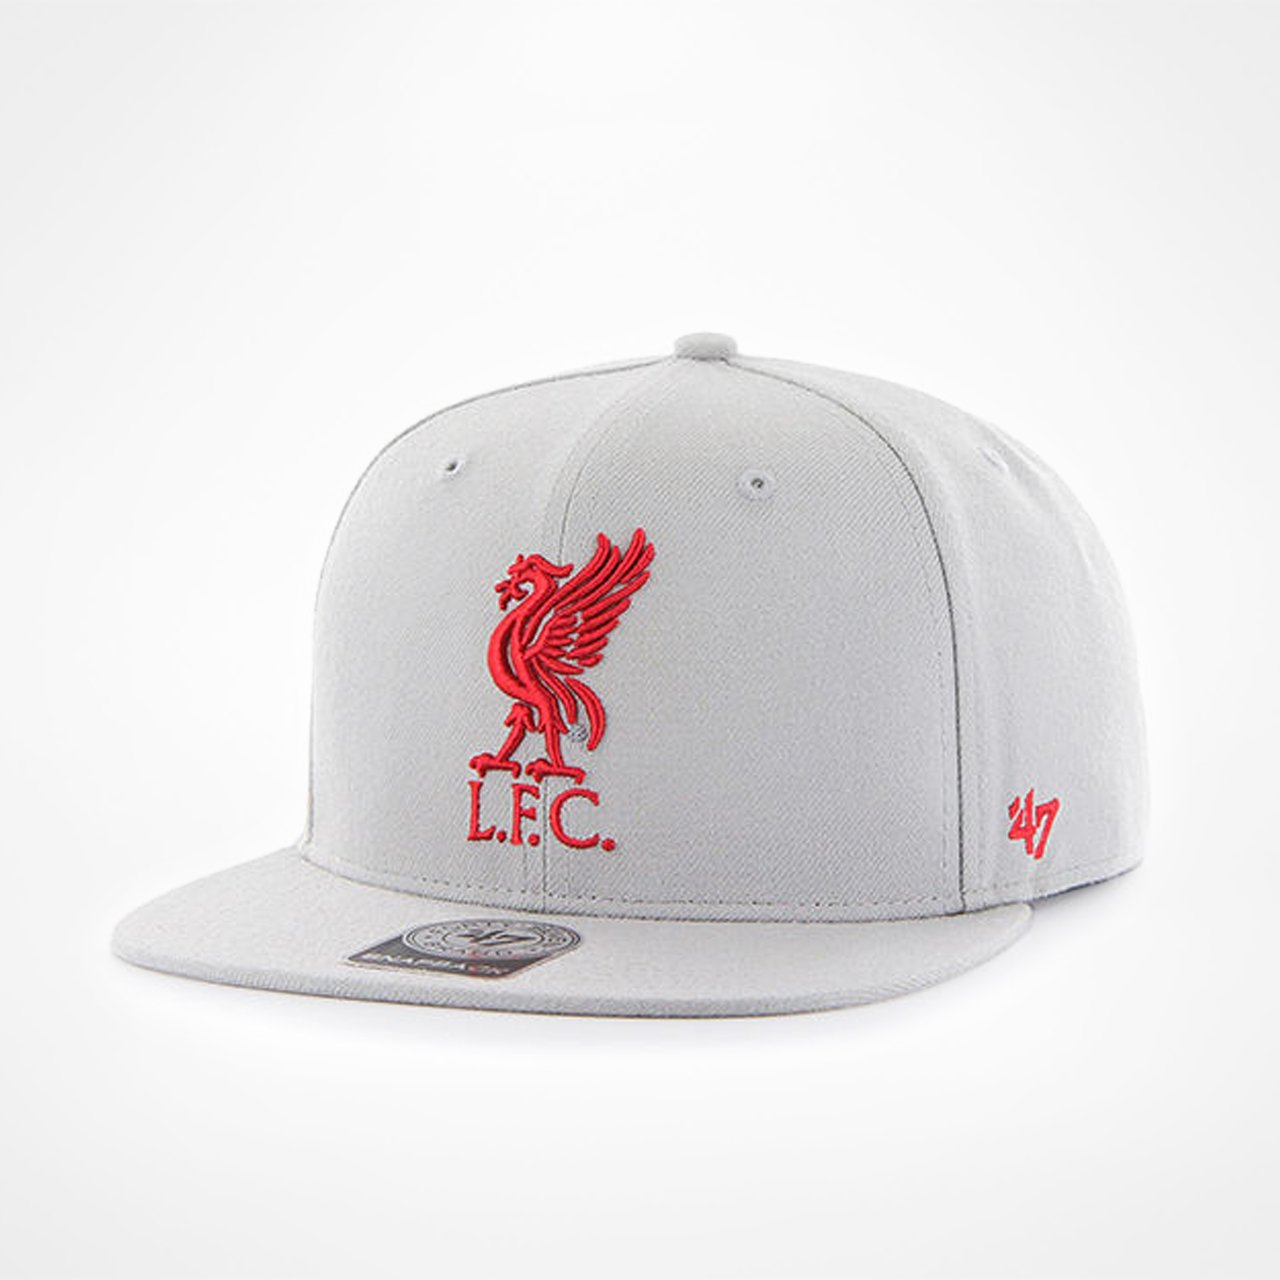 Liverpool Fc Jersey For Sale